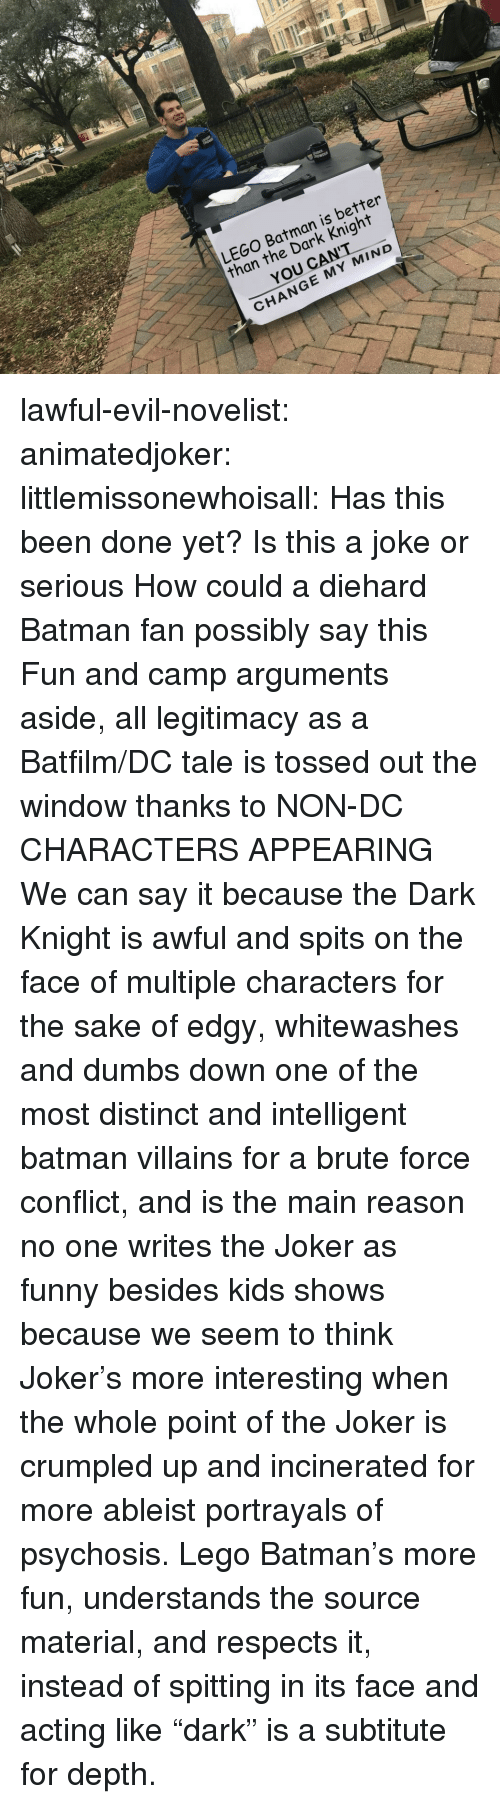 "batman villains: LEGO Batman is better  than the Dark Knight  YOU CANT  CHANGE MY MIND lawful-evil-novelist:  animatedjoker:   littlemissonewhoisall: Has this been done yet?  Is this a joke or serious How could a diehard Batman fan possibly say this Fun and camp arguments aside, all legitimacy as a Batfilm/DC tale is tossed out the window thanks to NON-DC CHARACTERS APPEARING    We can say it because the Dark Knight is awful and spits on the face of multiple characters for the sake of edgy, whitewashes and dumbs down one of the most distinct and intelligent batman villains for a brute force conflict, and is the main reason no one writes the Joker as funny besides kids shows because we seem to think Joker's more interesting when the whole point of the Joker is crumpled up and incinerated for more ableist portrayals of psychosis. Lego Batman's more fun, understands the source material, and respects it, instead of spitting in its face and acting like ""dark"" is a subtitute for depth."